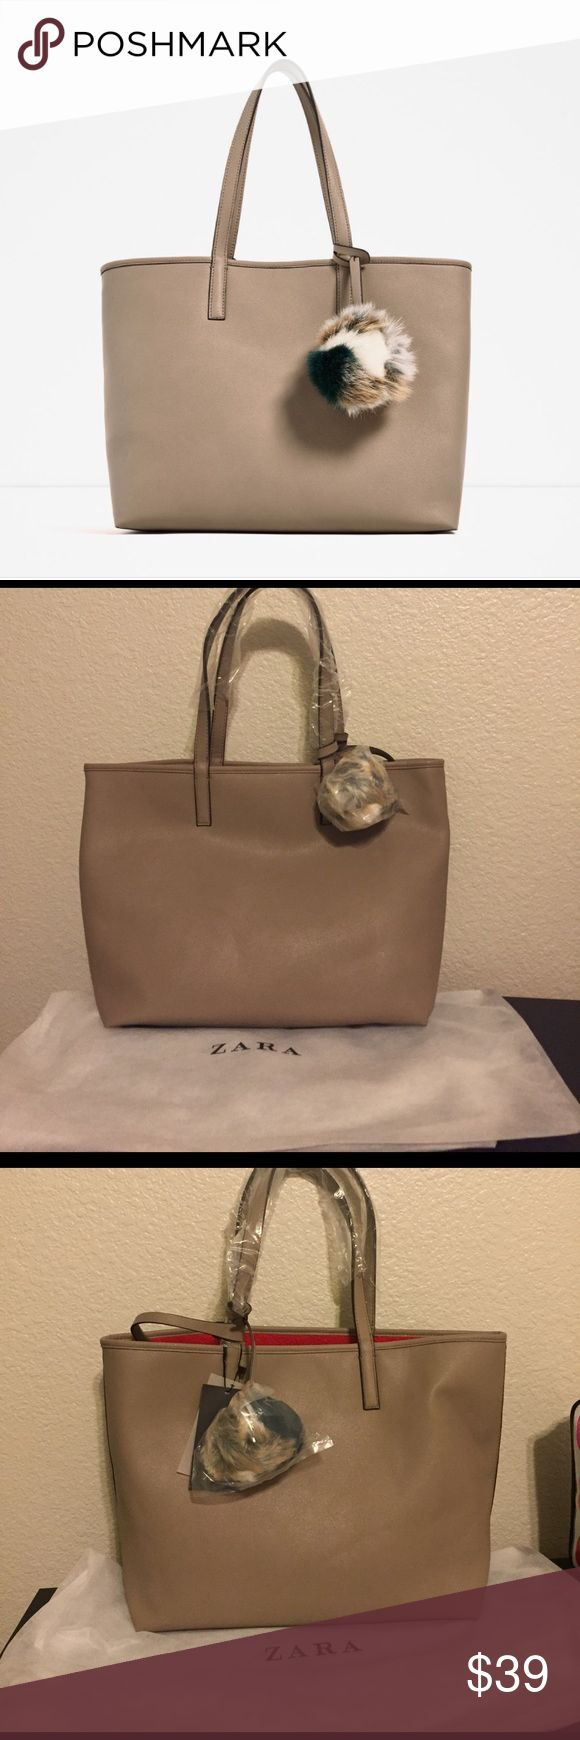 BRAND NEW! ZARA TOTE BAG! NEW! Never used with dust bag and tags attached. Tan color ZARA tote bag! Zara Bags Totes